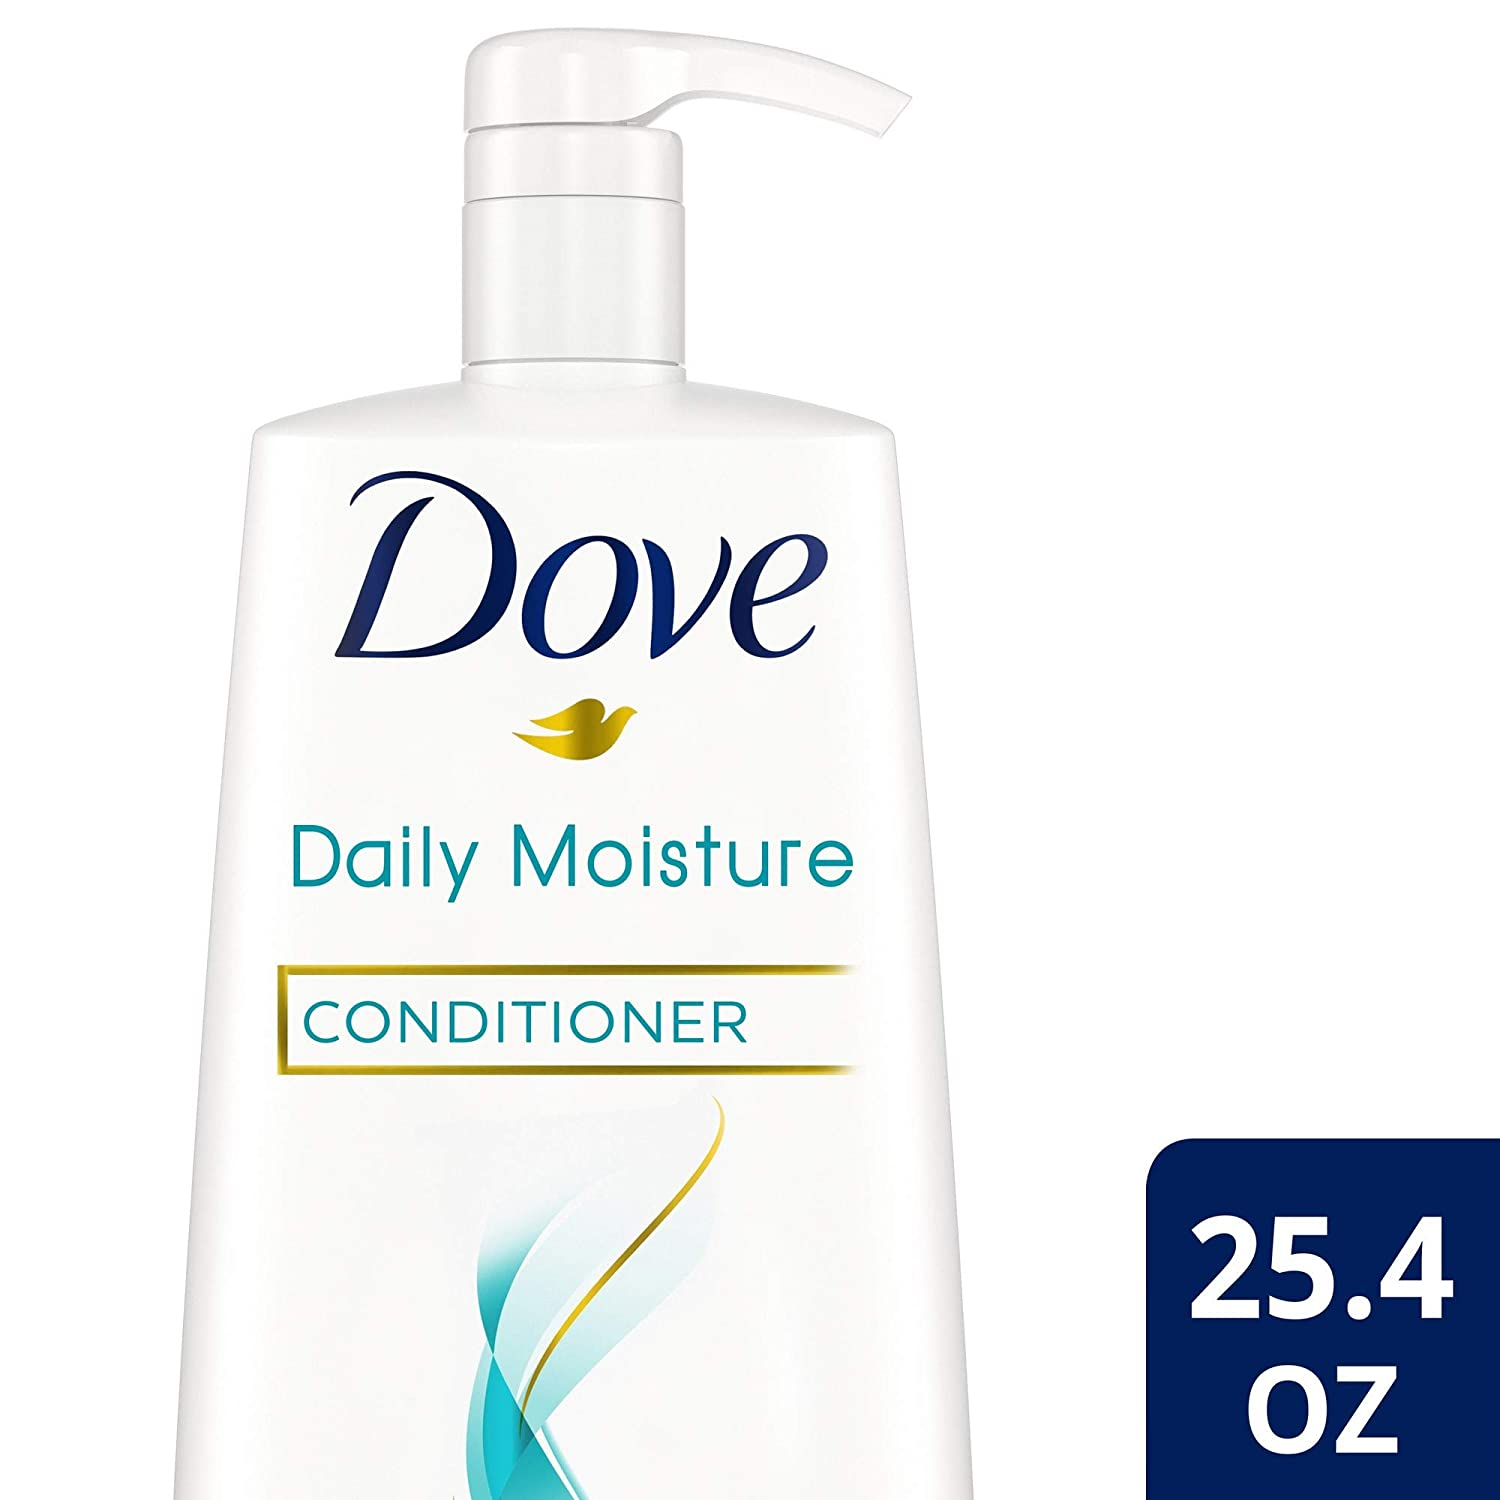 Dove Nutritive Solutions Daily Moisture Conditioner with Pump,25.4 oz